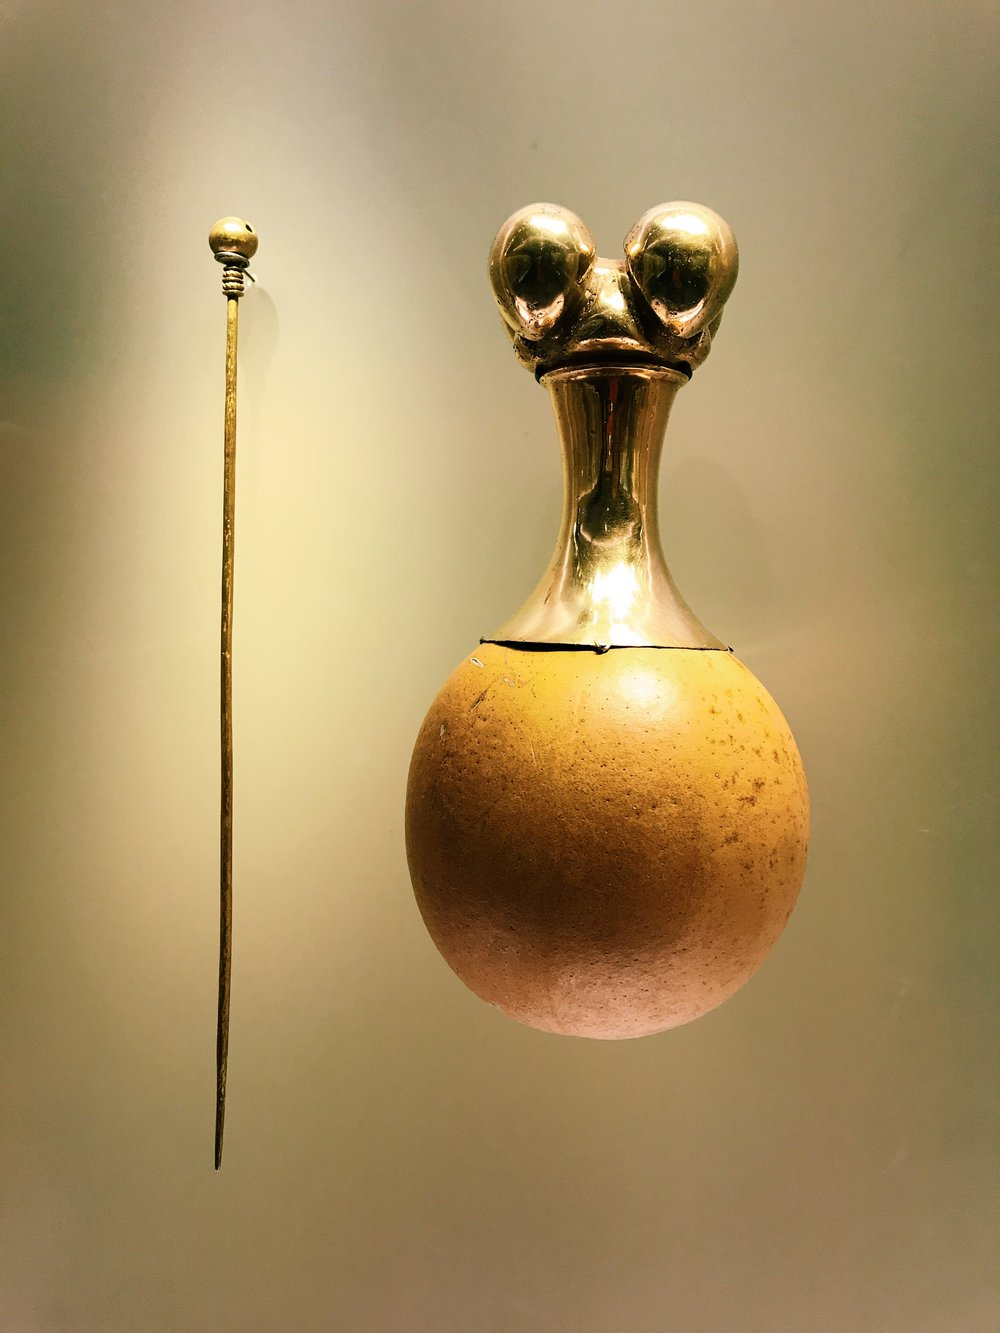 The Spanish stole most of Colombia's gold, but you can still find some in its Museo del Oro. This poporo was used by the indigenous people to carry limes. When they chewed coca leaves, a sacred act, they chewed the lime, as well. That stick was used to bring the lime bits to their mouths.